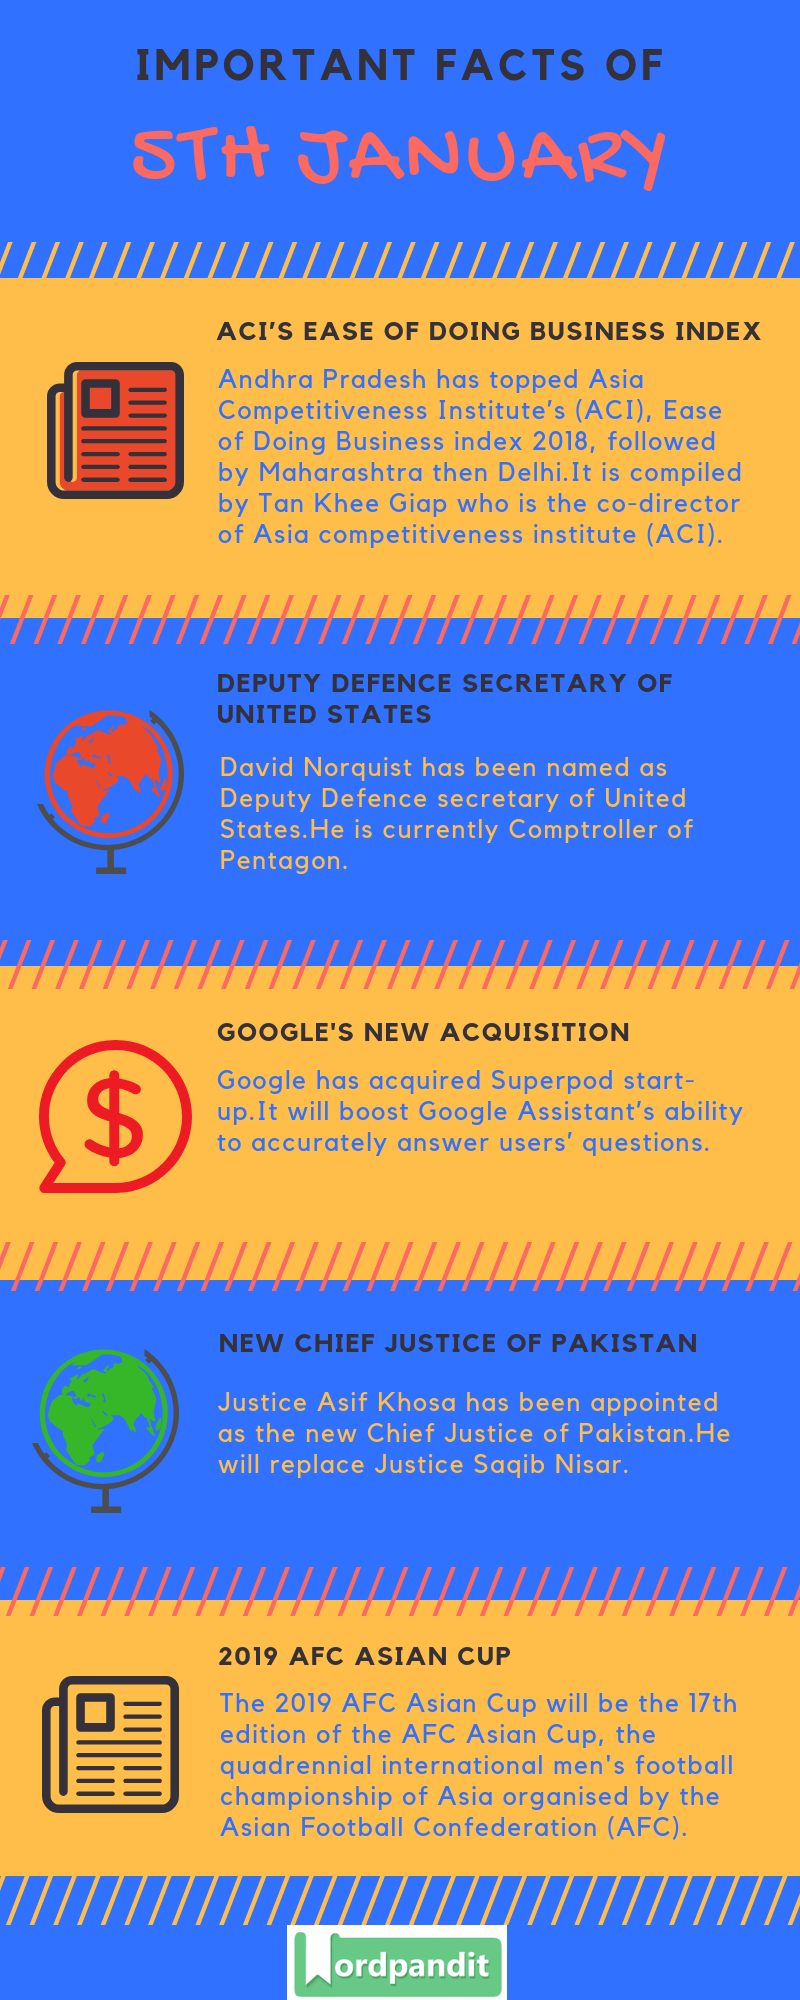 Daily Current Affairs 5 January 2019 Current Affairs Quiz 5 January 2019 Current Affairs Infographic